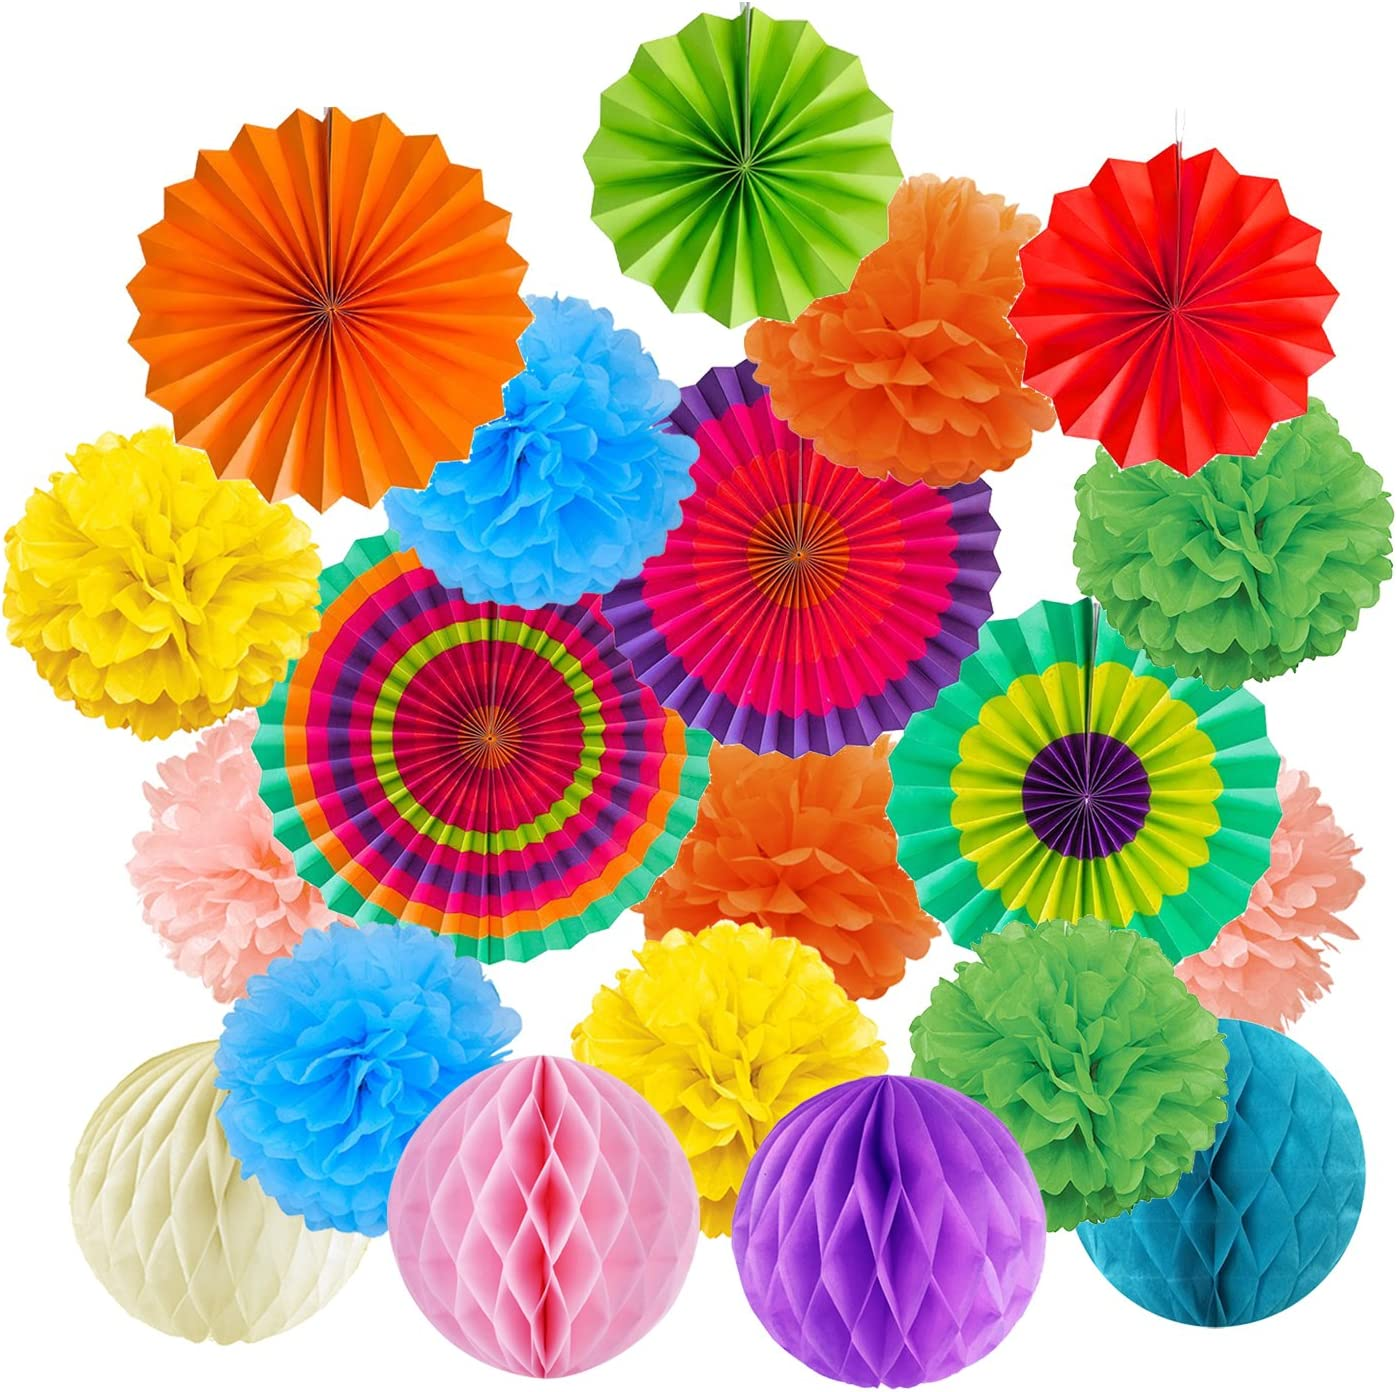 20Pcs Paper Flower Balls Pom-poms Honeycomb Balls for Birthday Party Wedding Ceiling and Home Decorations